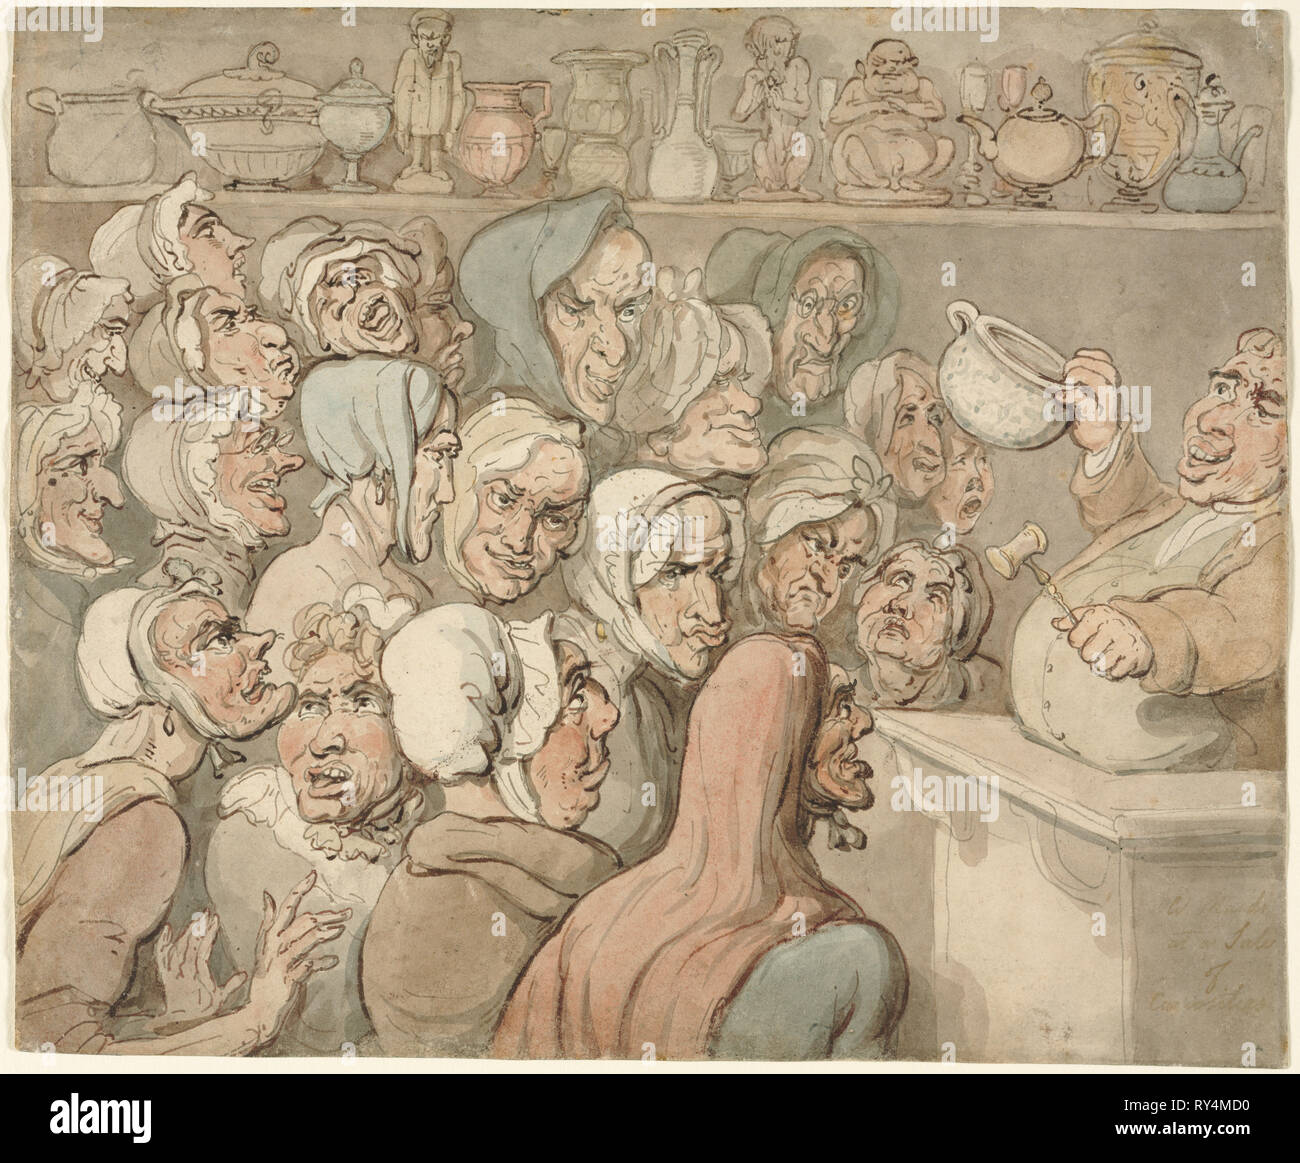 Old Maids at a Sale of Curiosities. Thomas Rowlandson (British, 1756-1827). Pen and brown and gray ink and watercolor wash - Stock Image